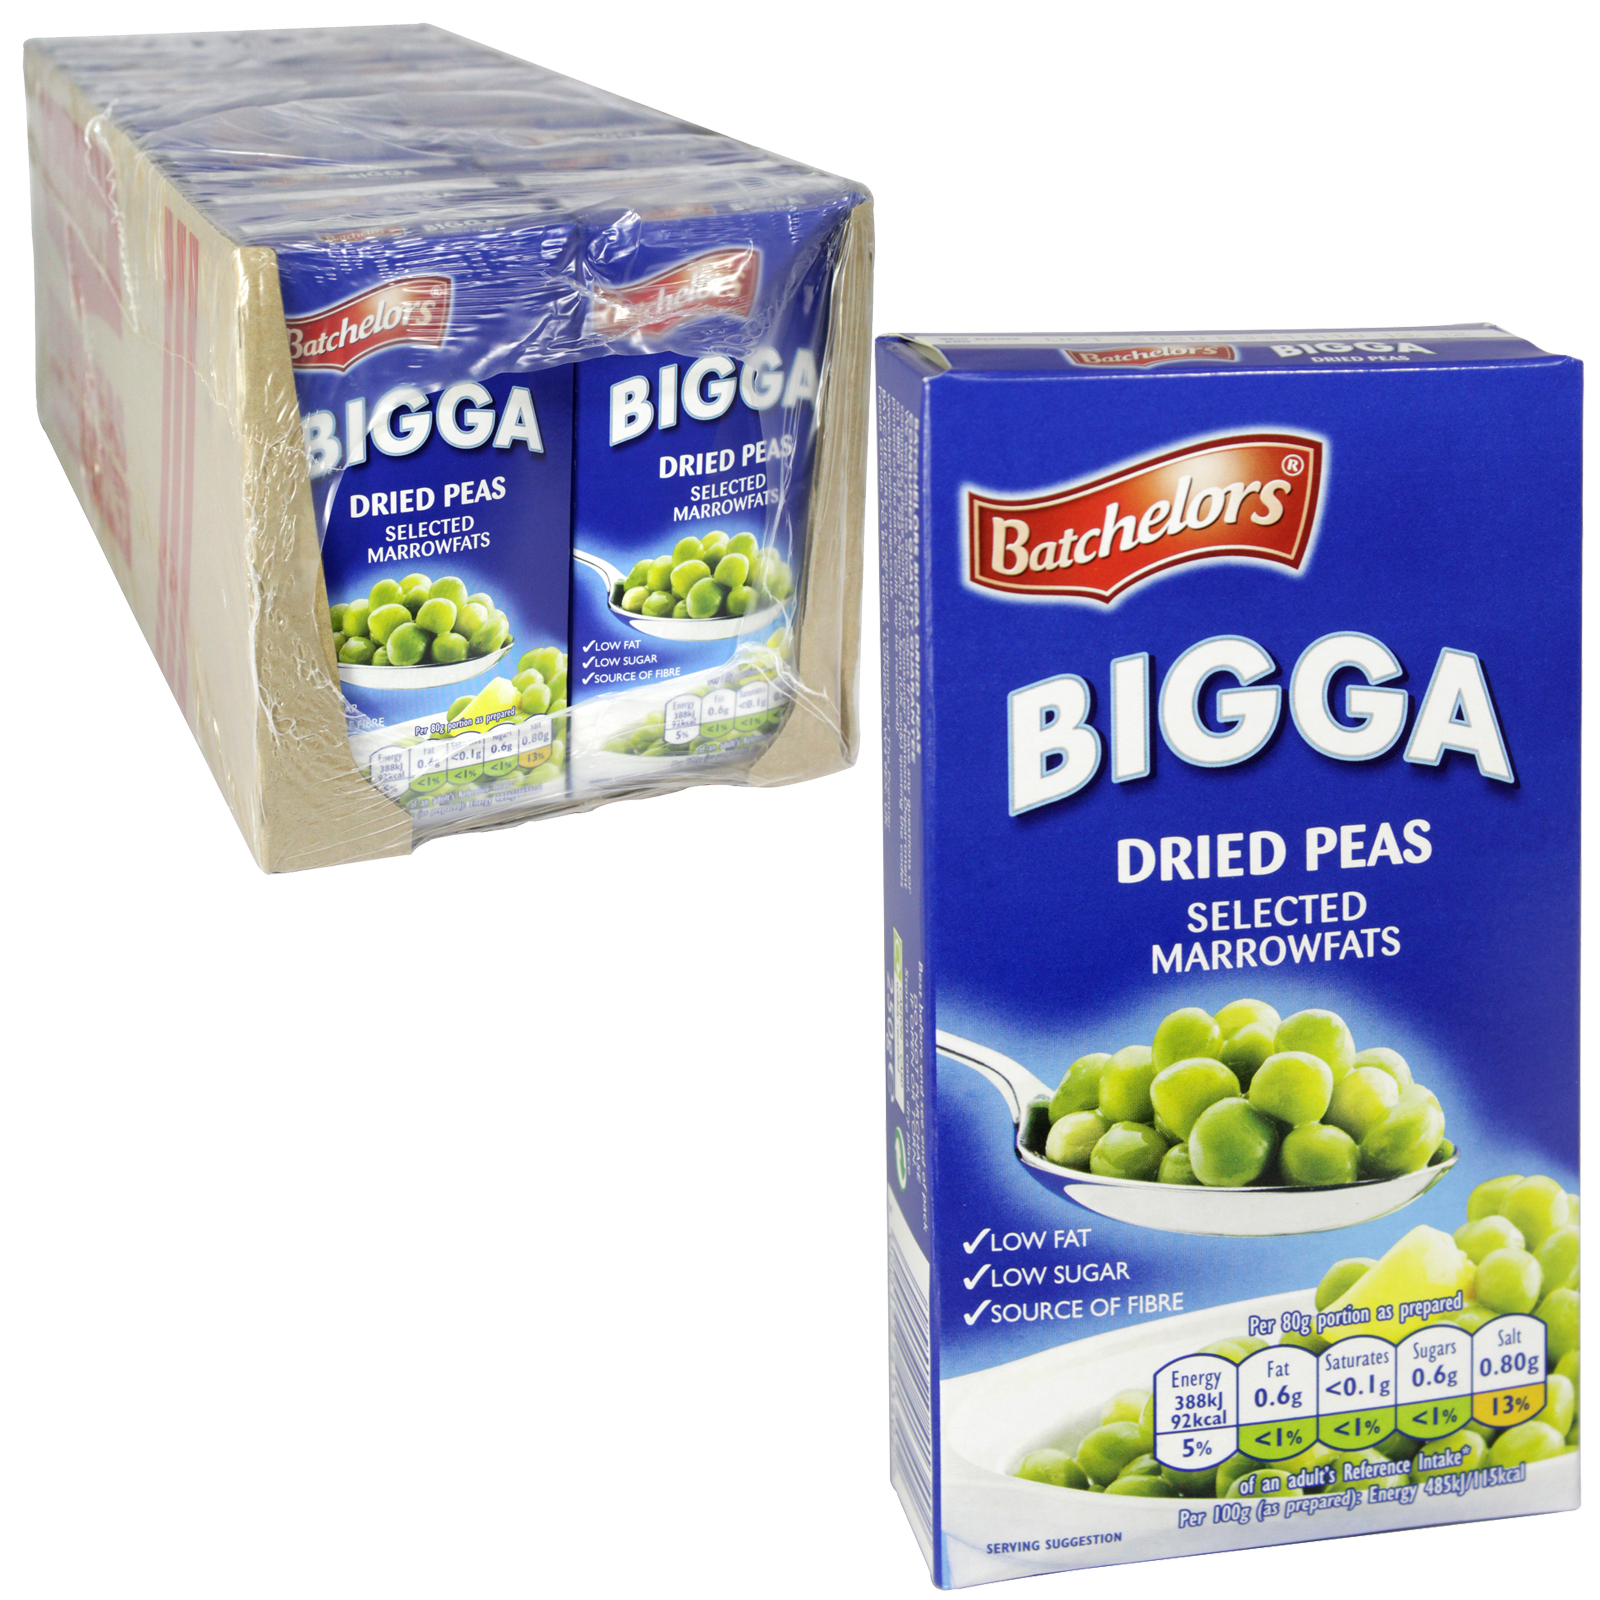 BATCHELORS BIGGA DRIED PEAS BOX 250G X24